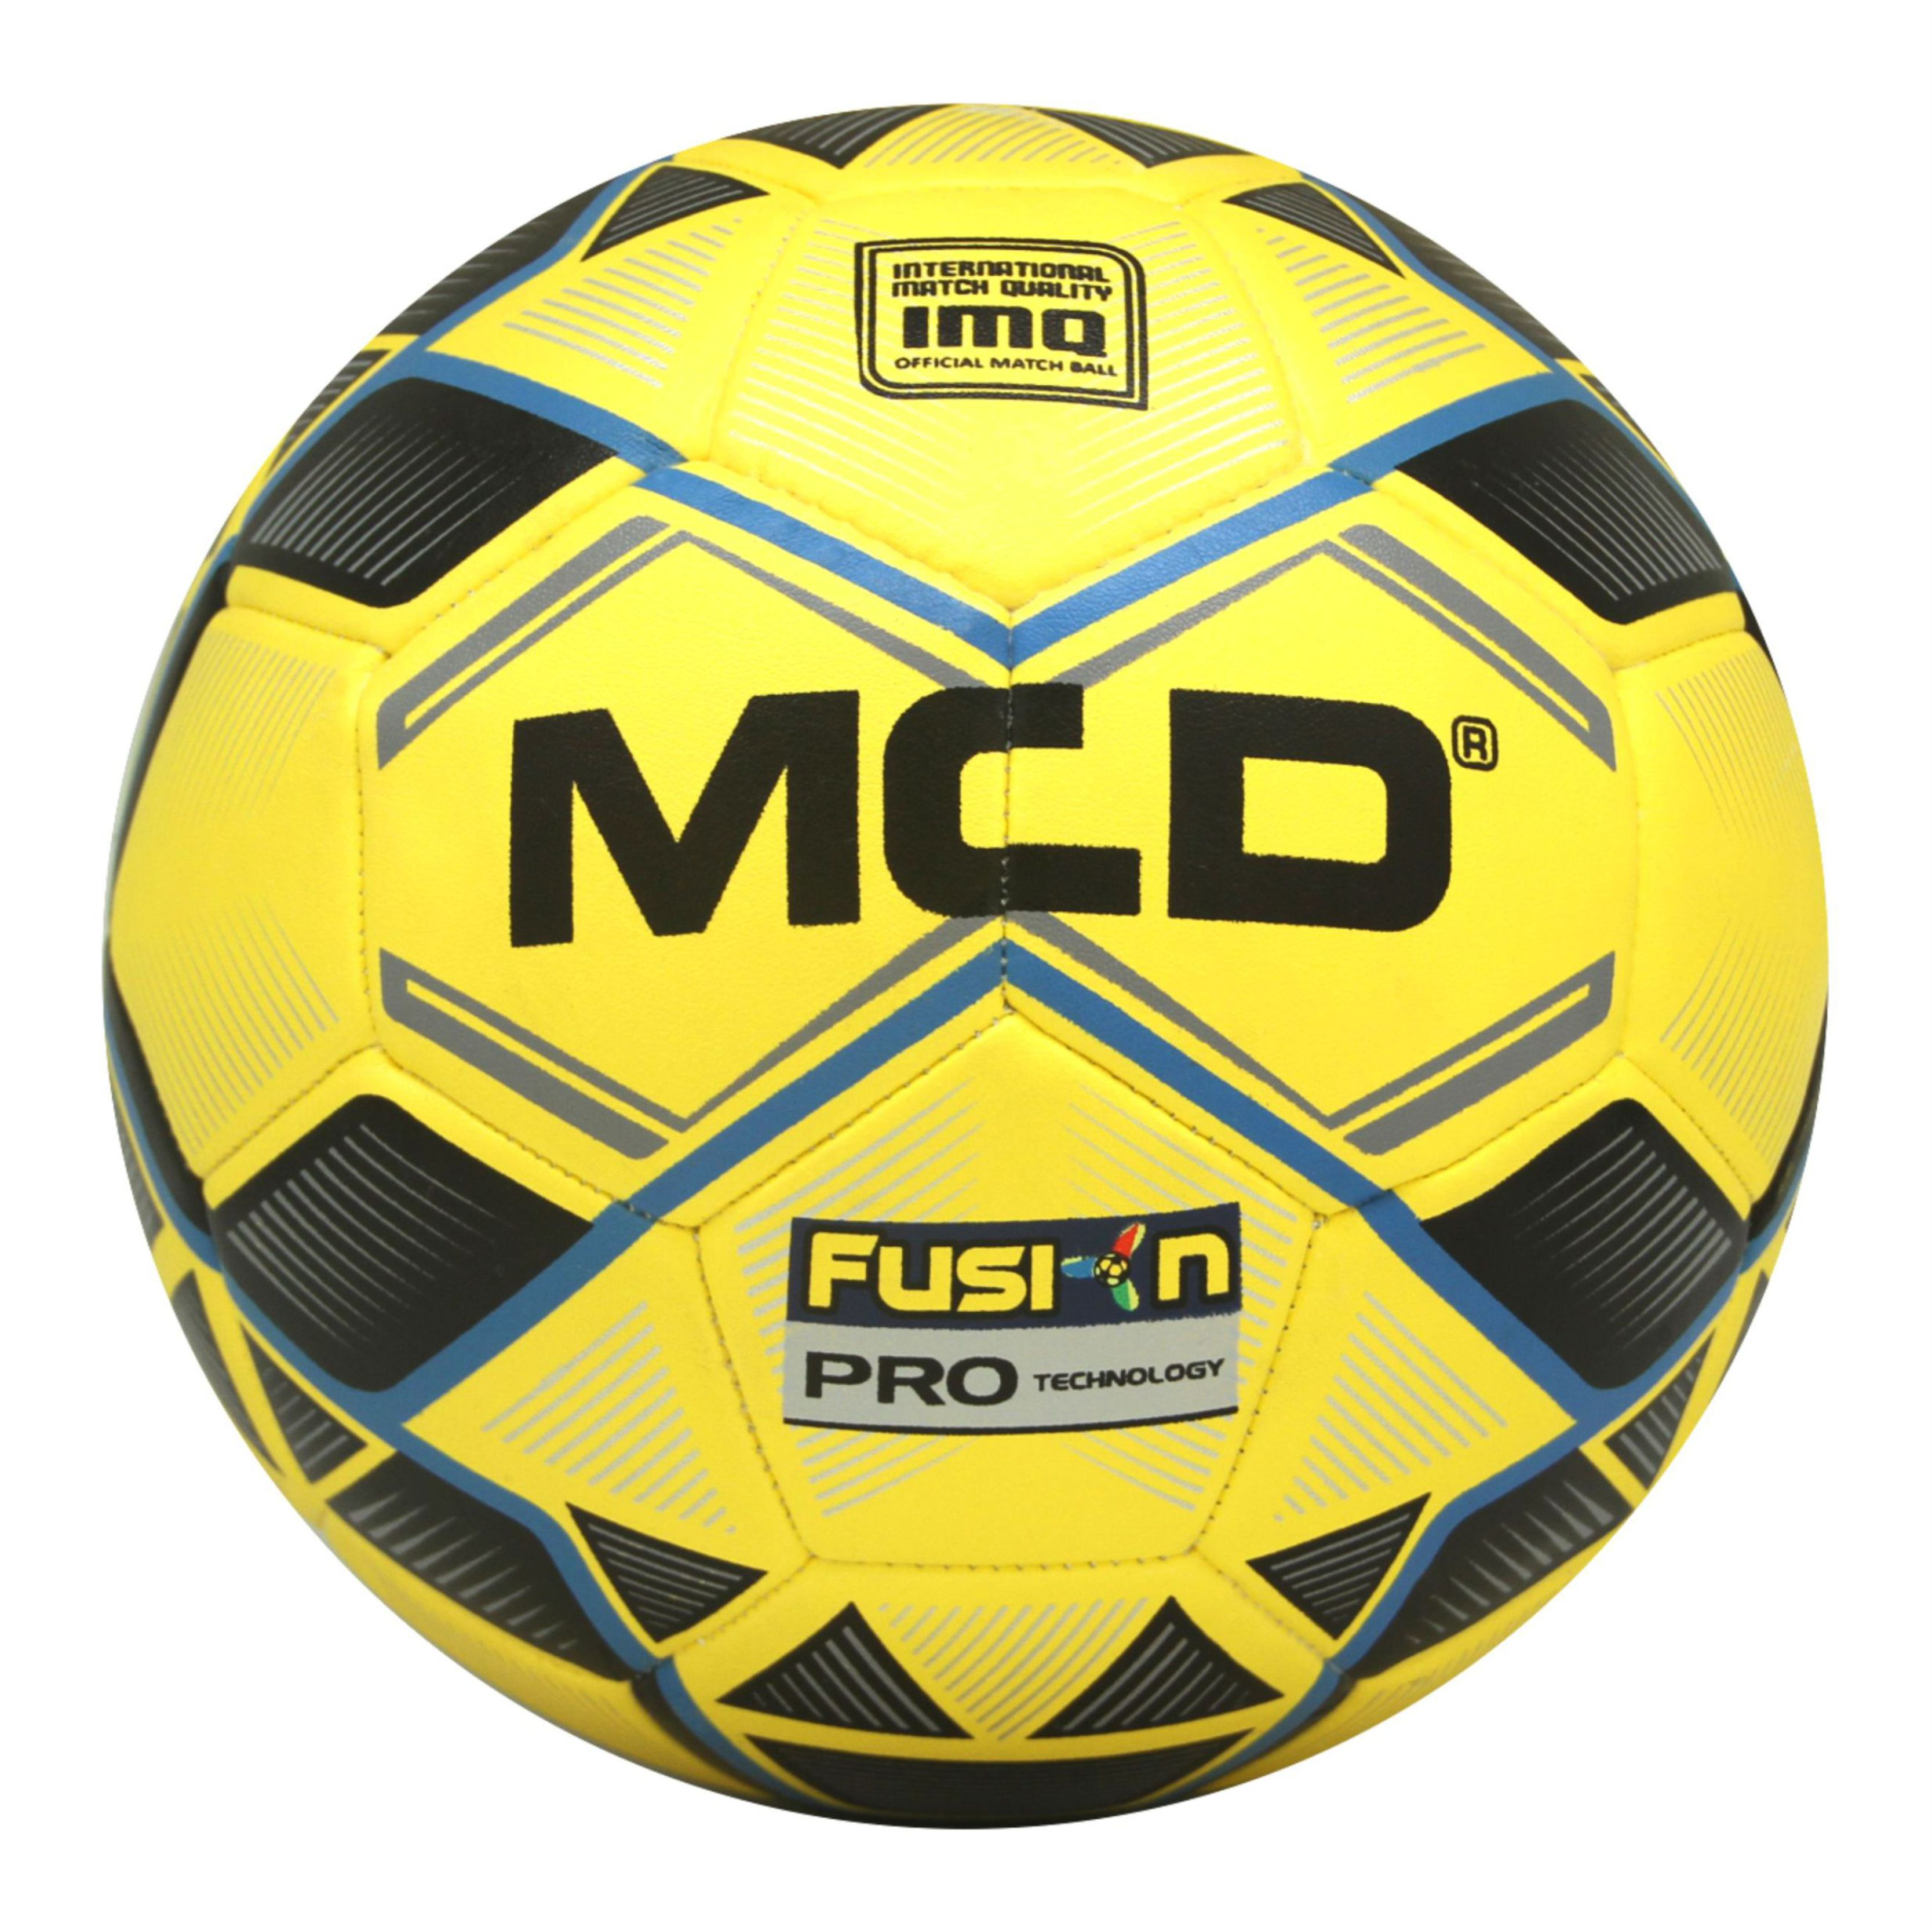 MCD Size 4 football, Under 10, 11, 12, 13 and 14 Age Groups, Football For Sports Kids And Boys Multicolor